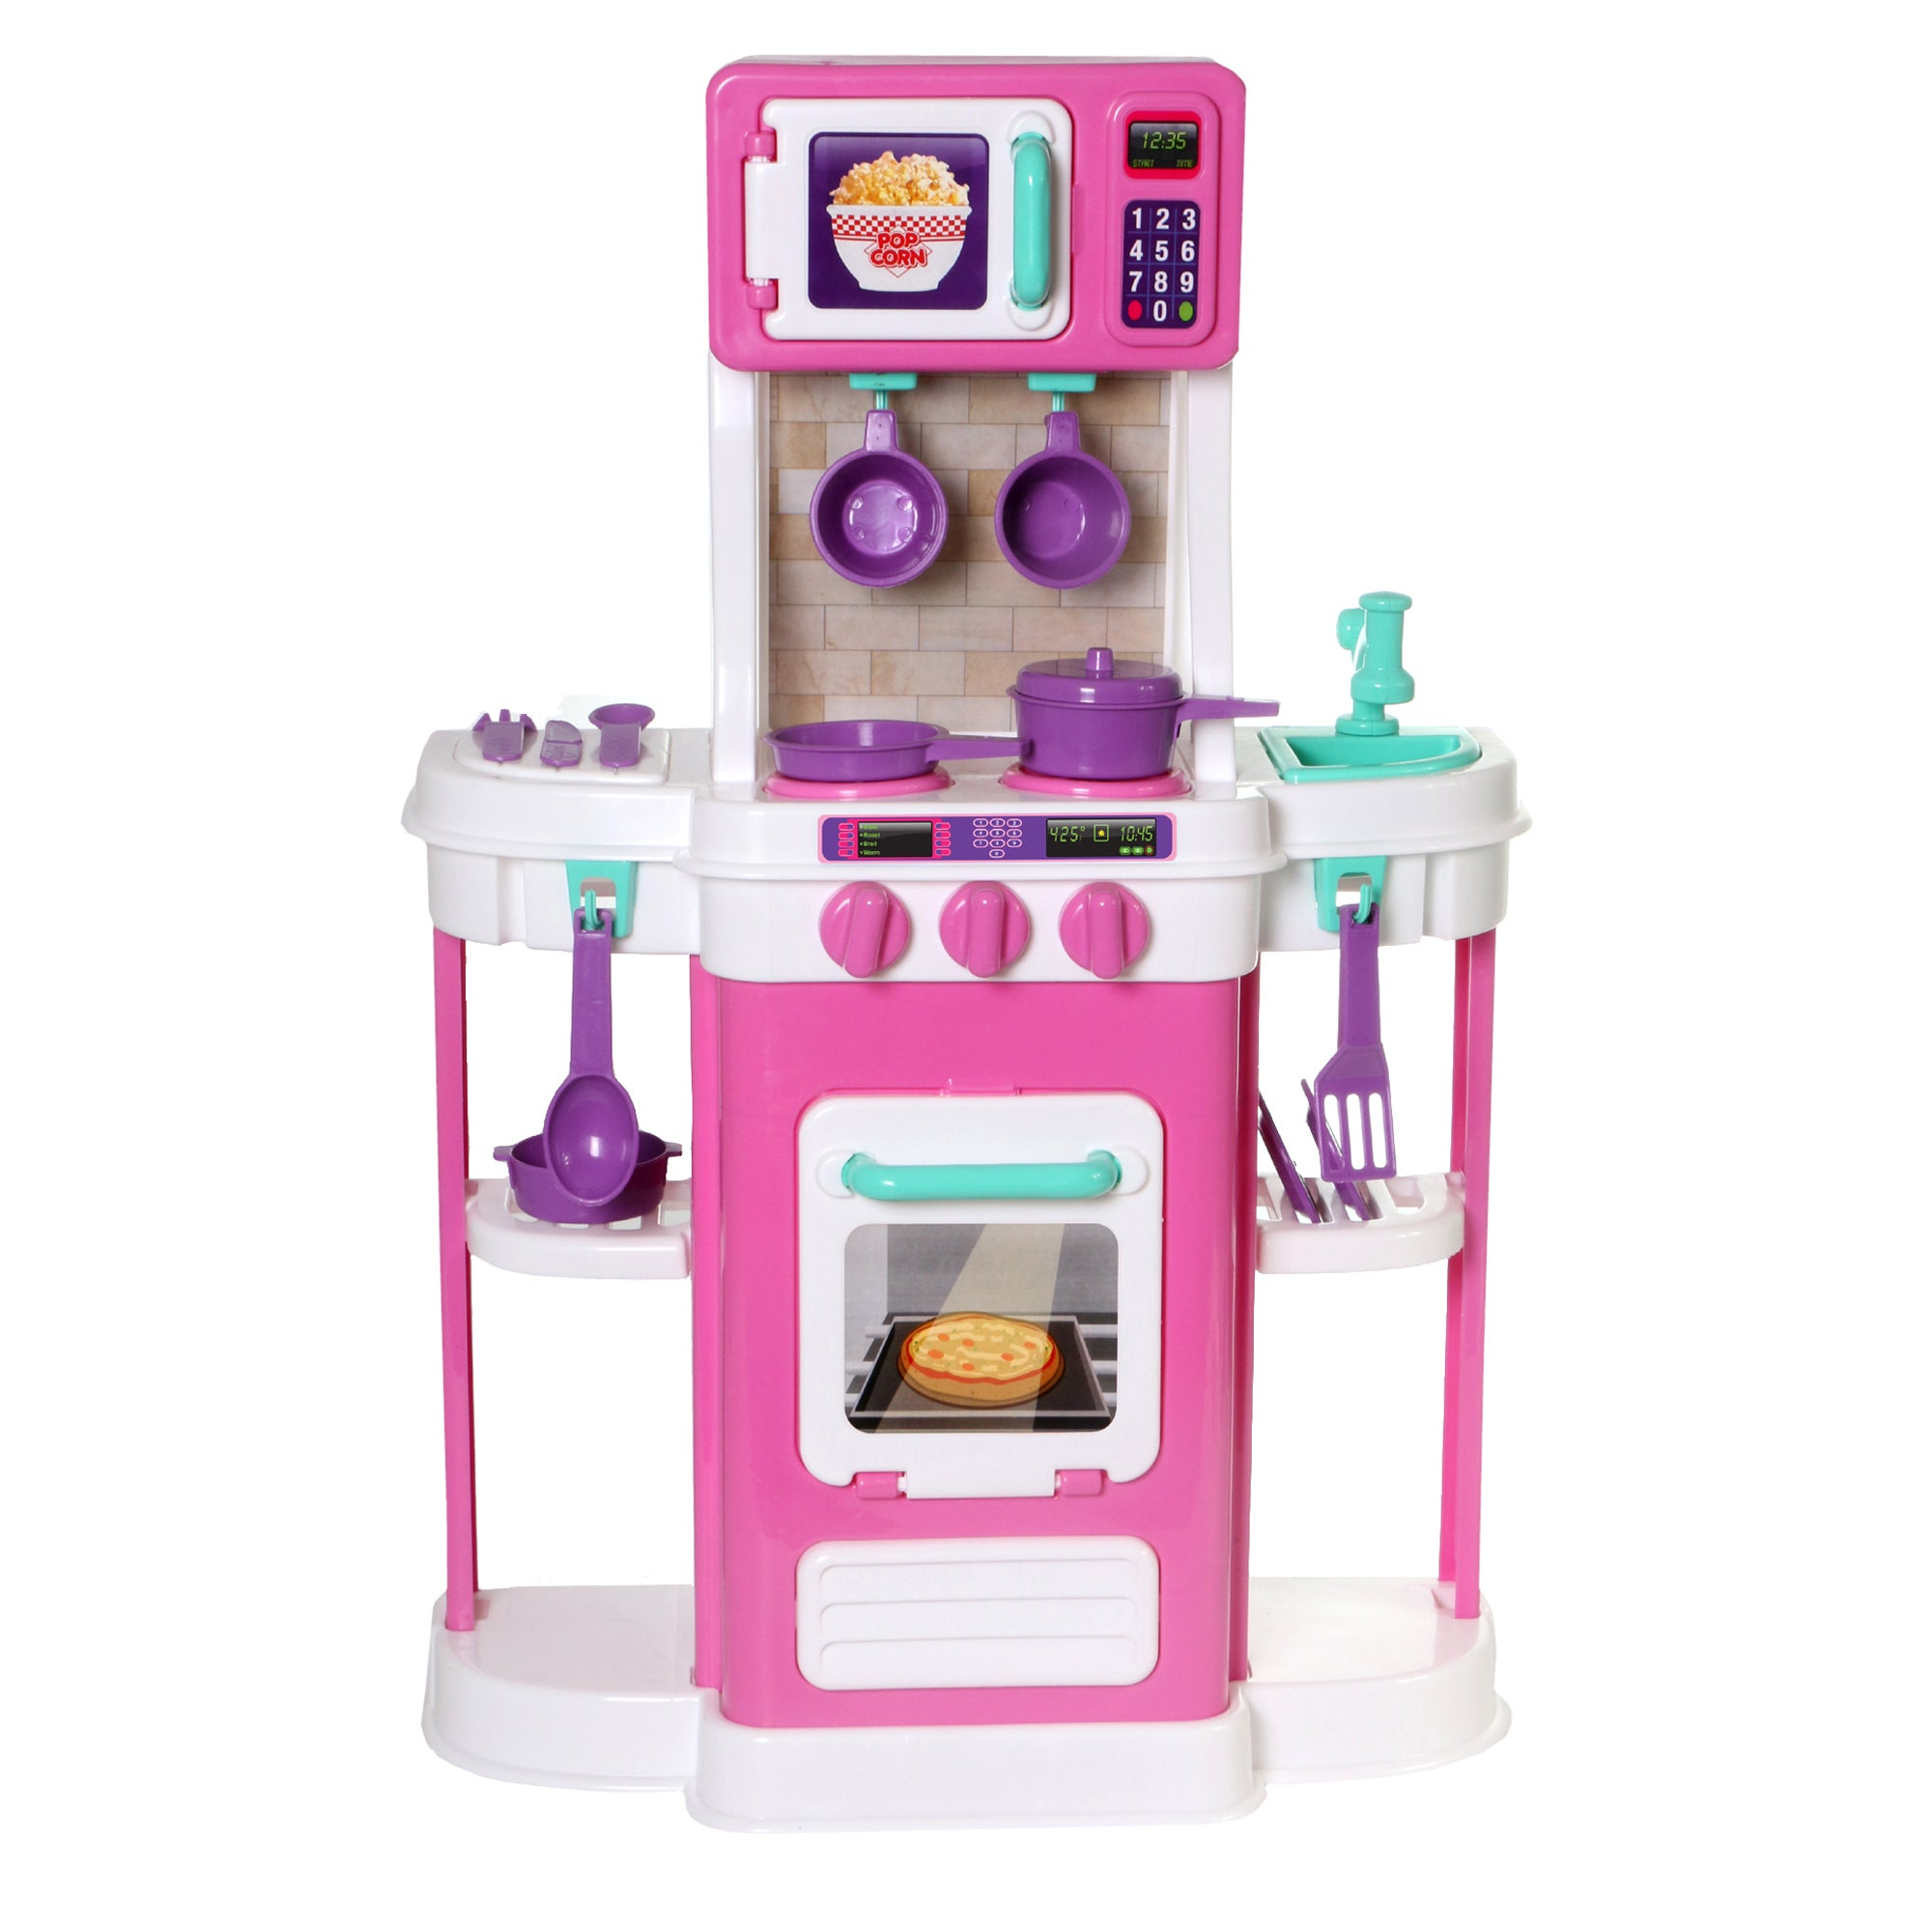 Amloid Pink Embled My First Cookin Kitchen Free Shipping On Orders Over 45 15435550